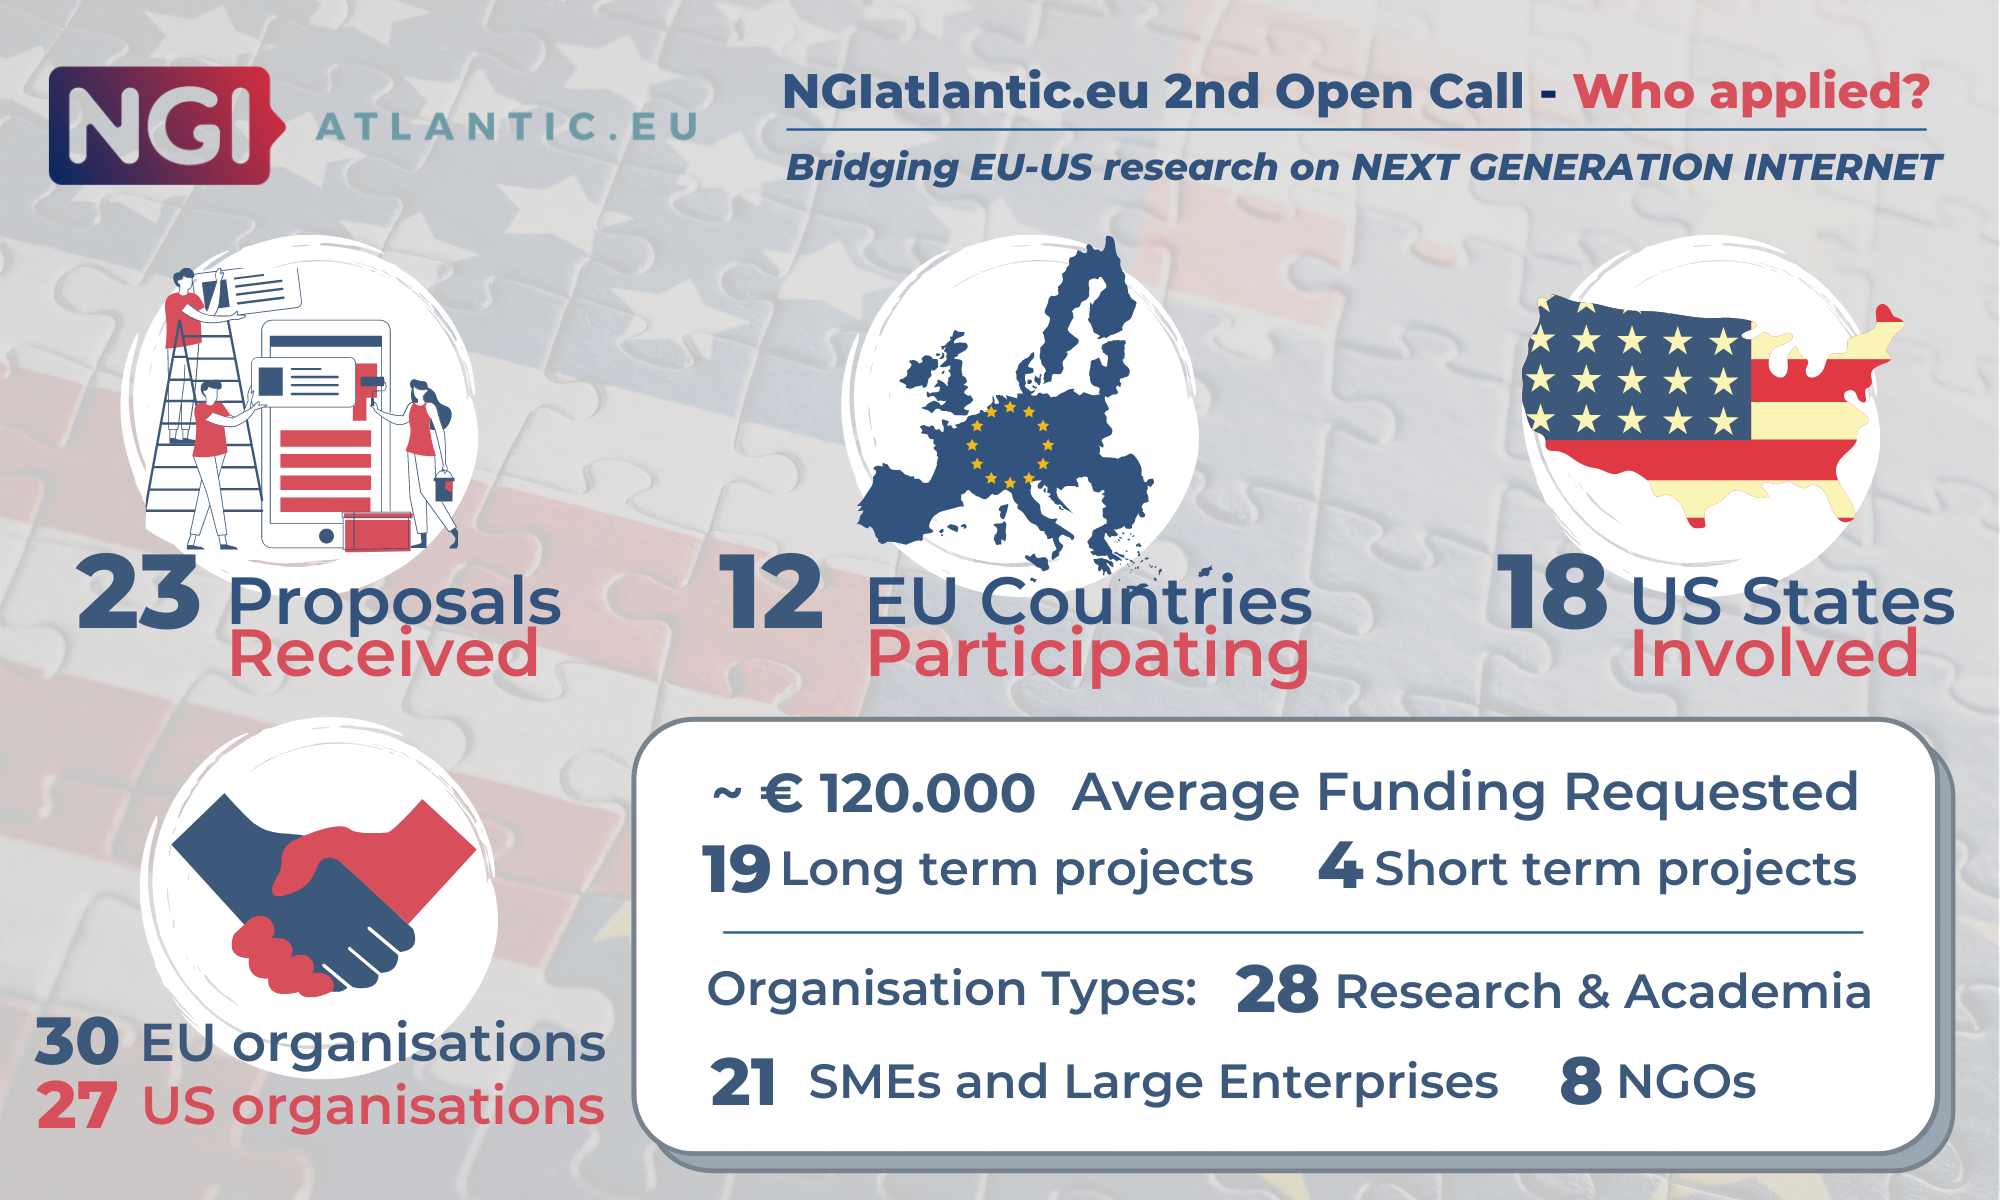 NGIatlantic.eu 2nd Open Call Insight